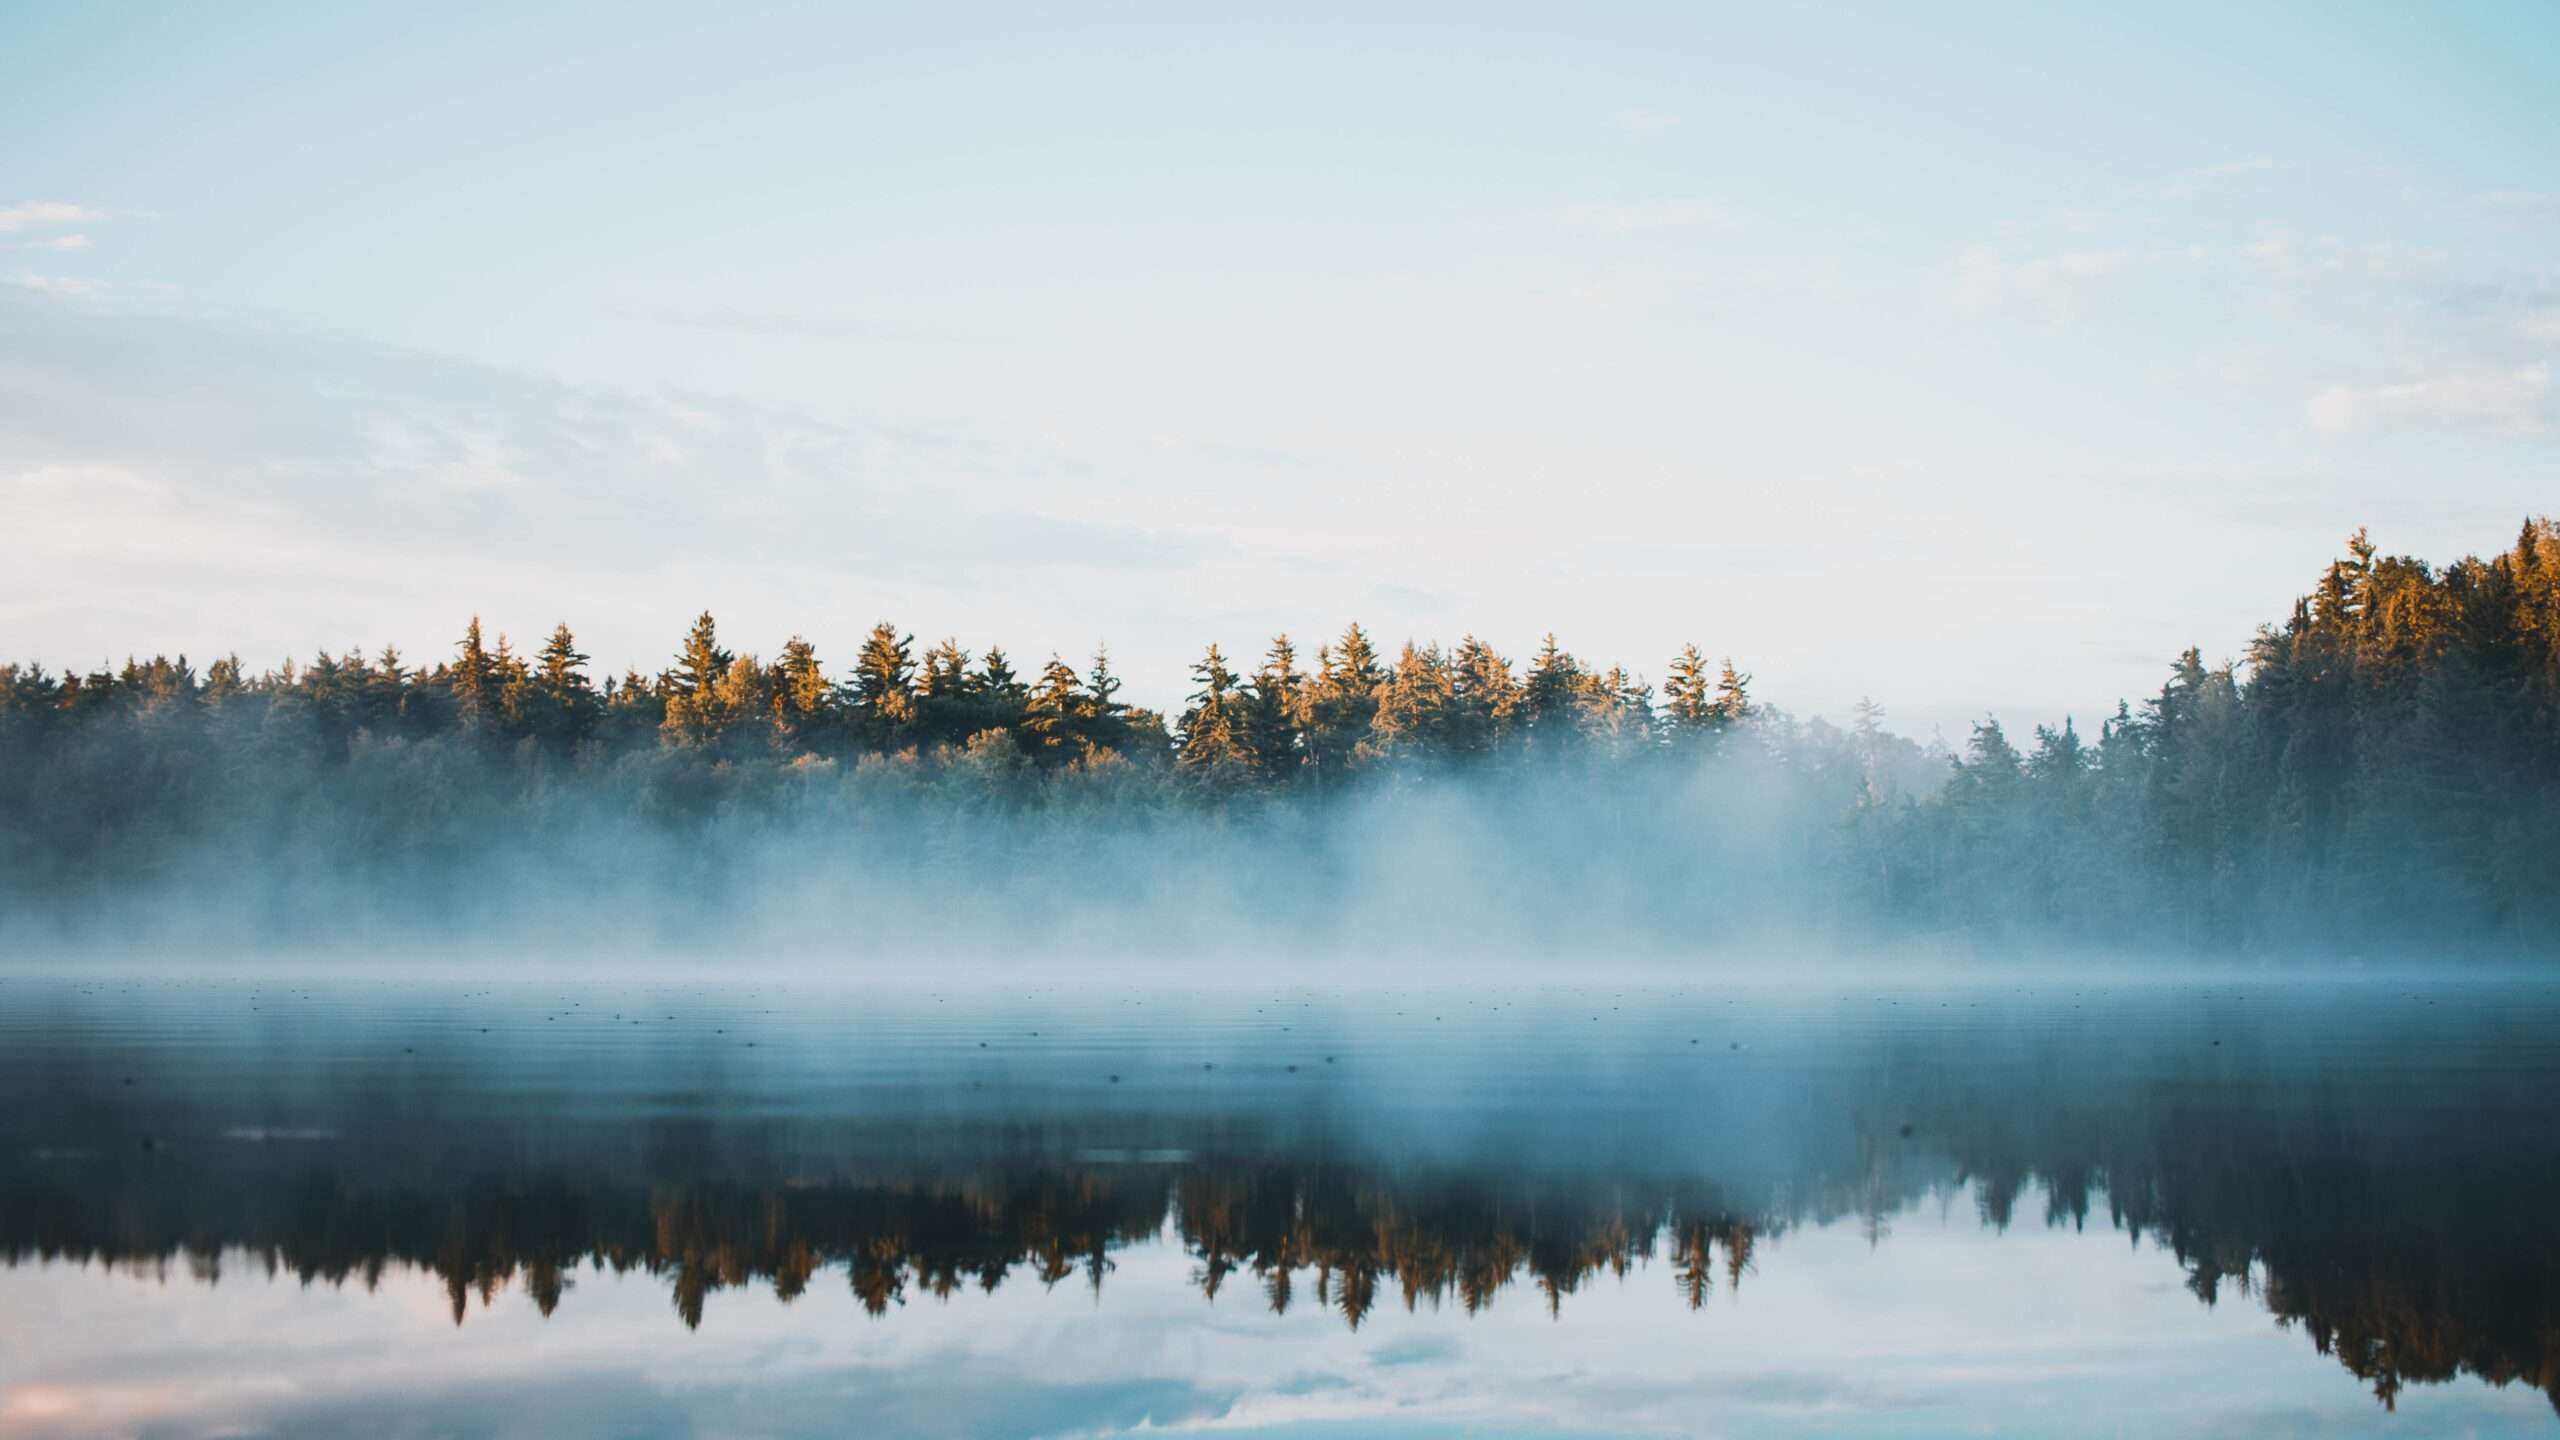 Misty lake in Ontario